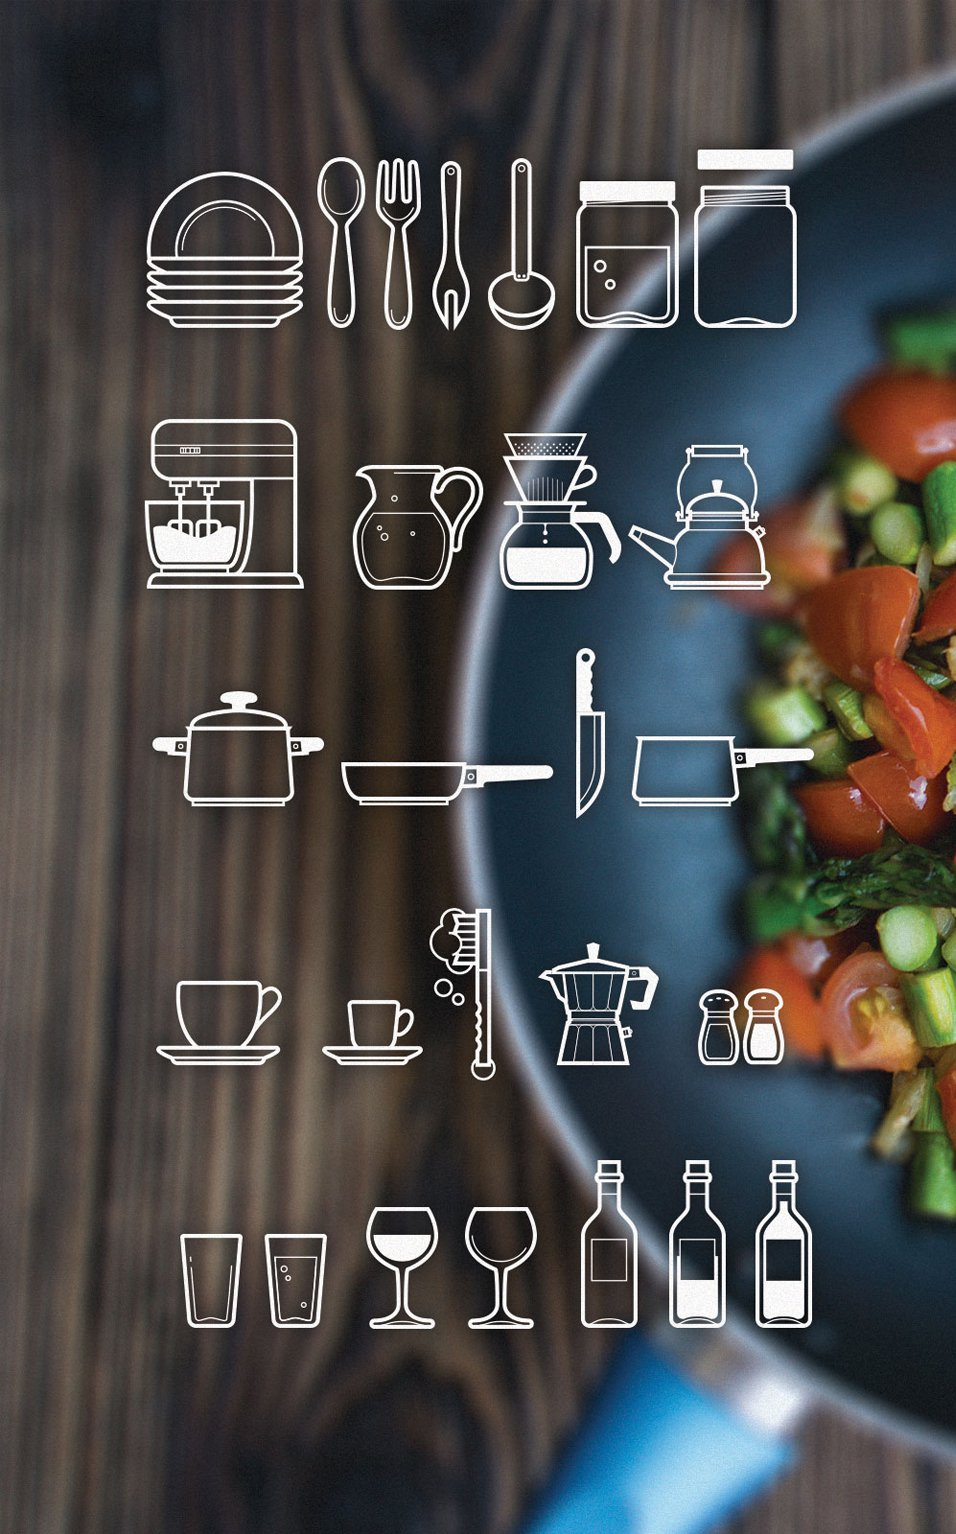 Free-Cutlery-Icon-Set by Firosnv